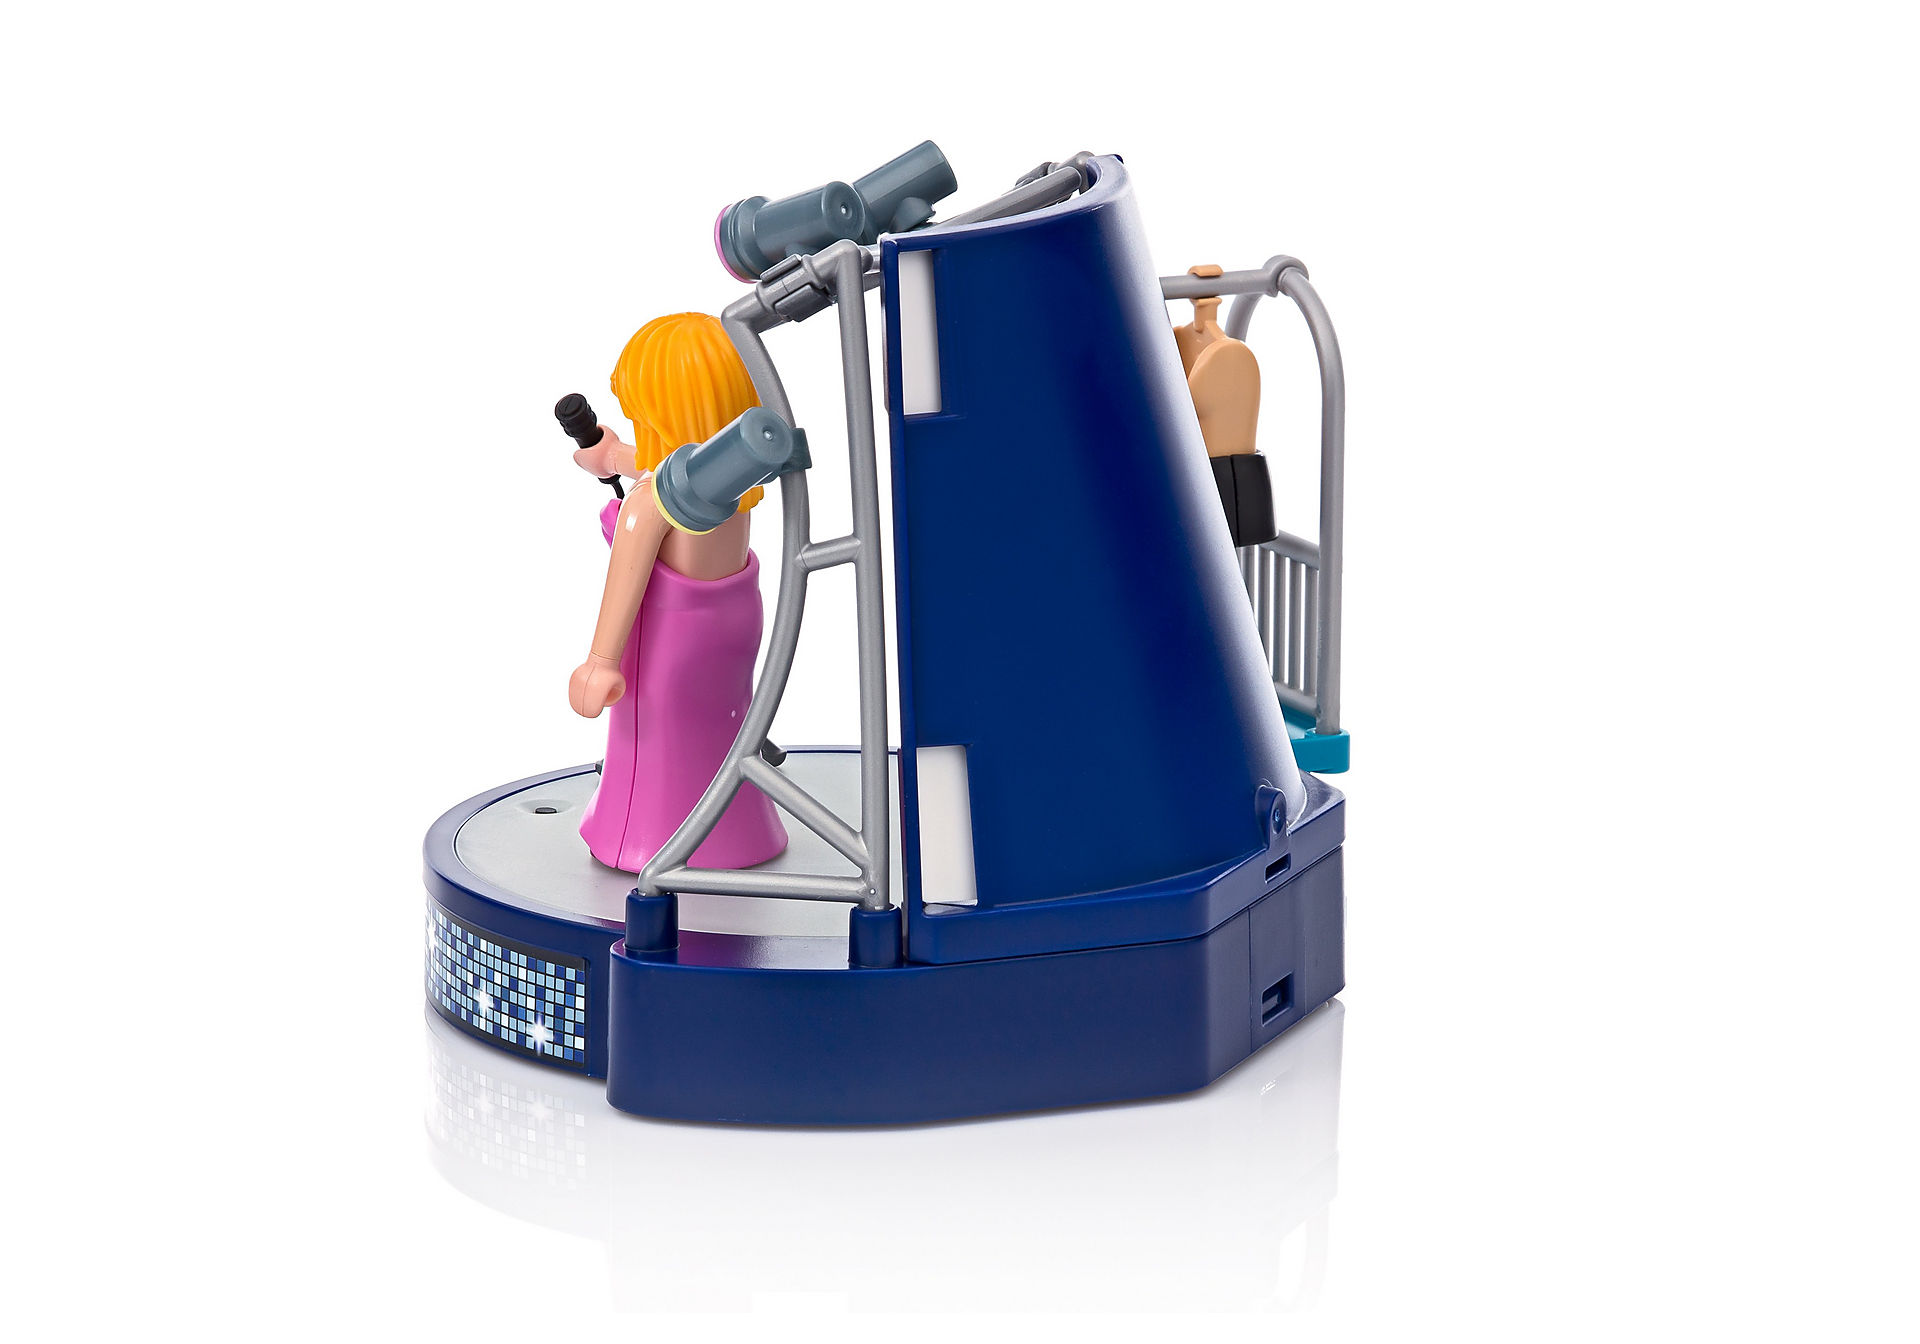 360degree image 14